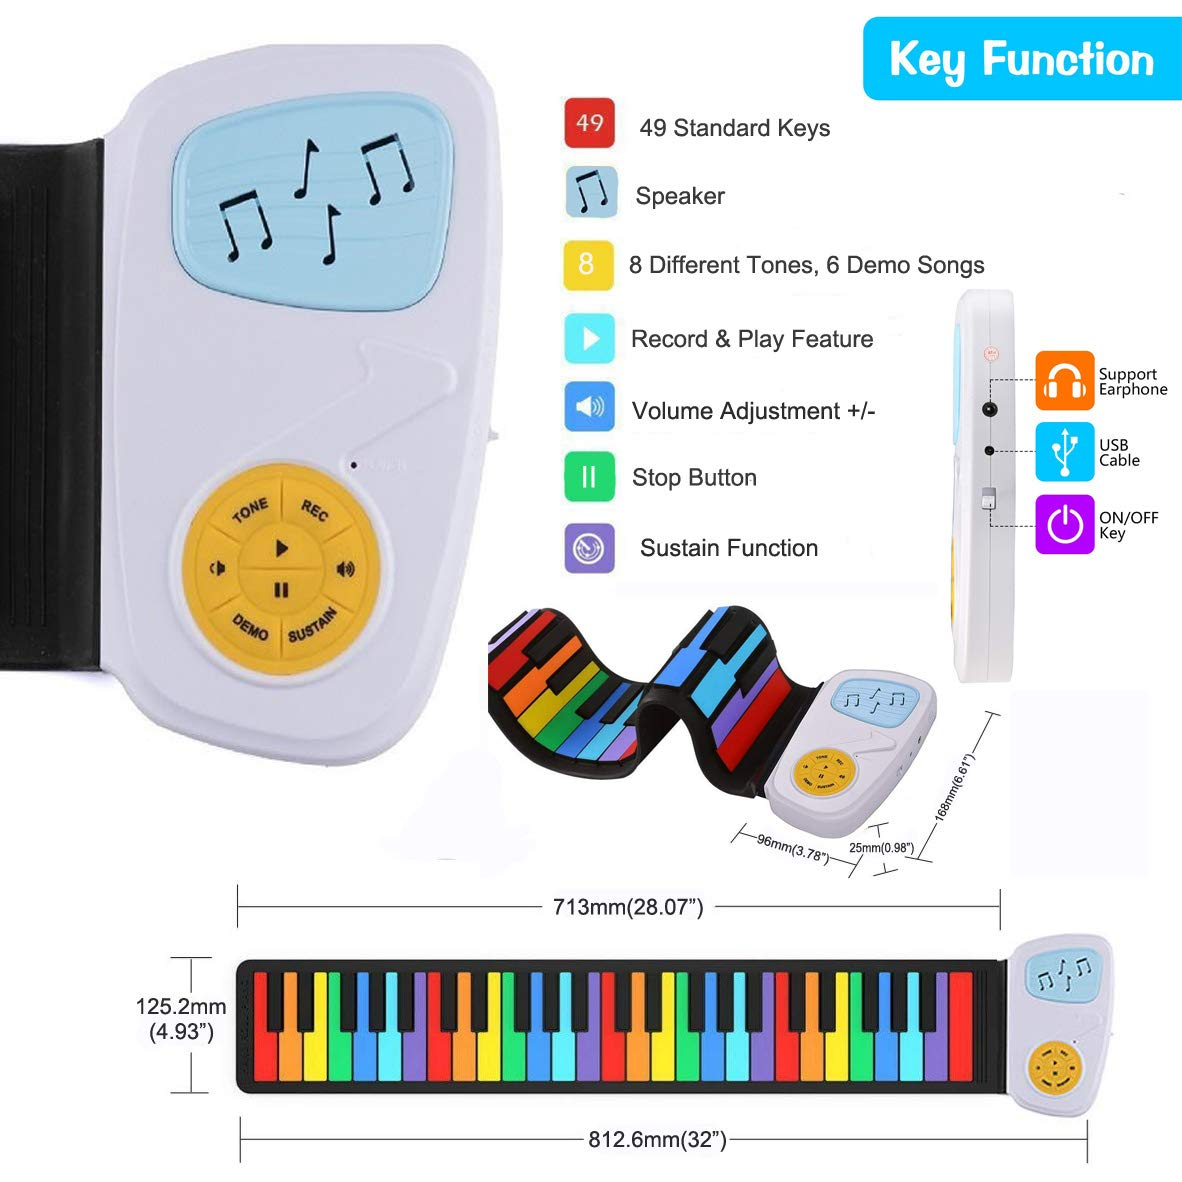 Elrido Roll Up Piano 49 Key Rainbow Silence Electronic Keyboard Childrens Hand Roll Piano with Built-in Speaker and Music Scores for Beginner Children Kids Gift